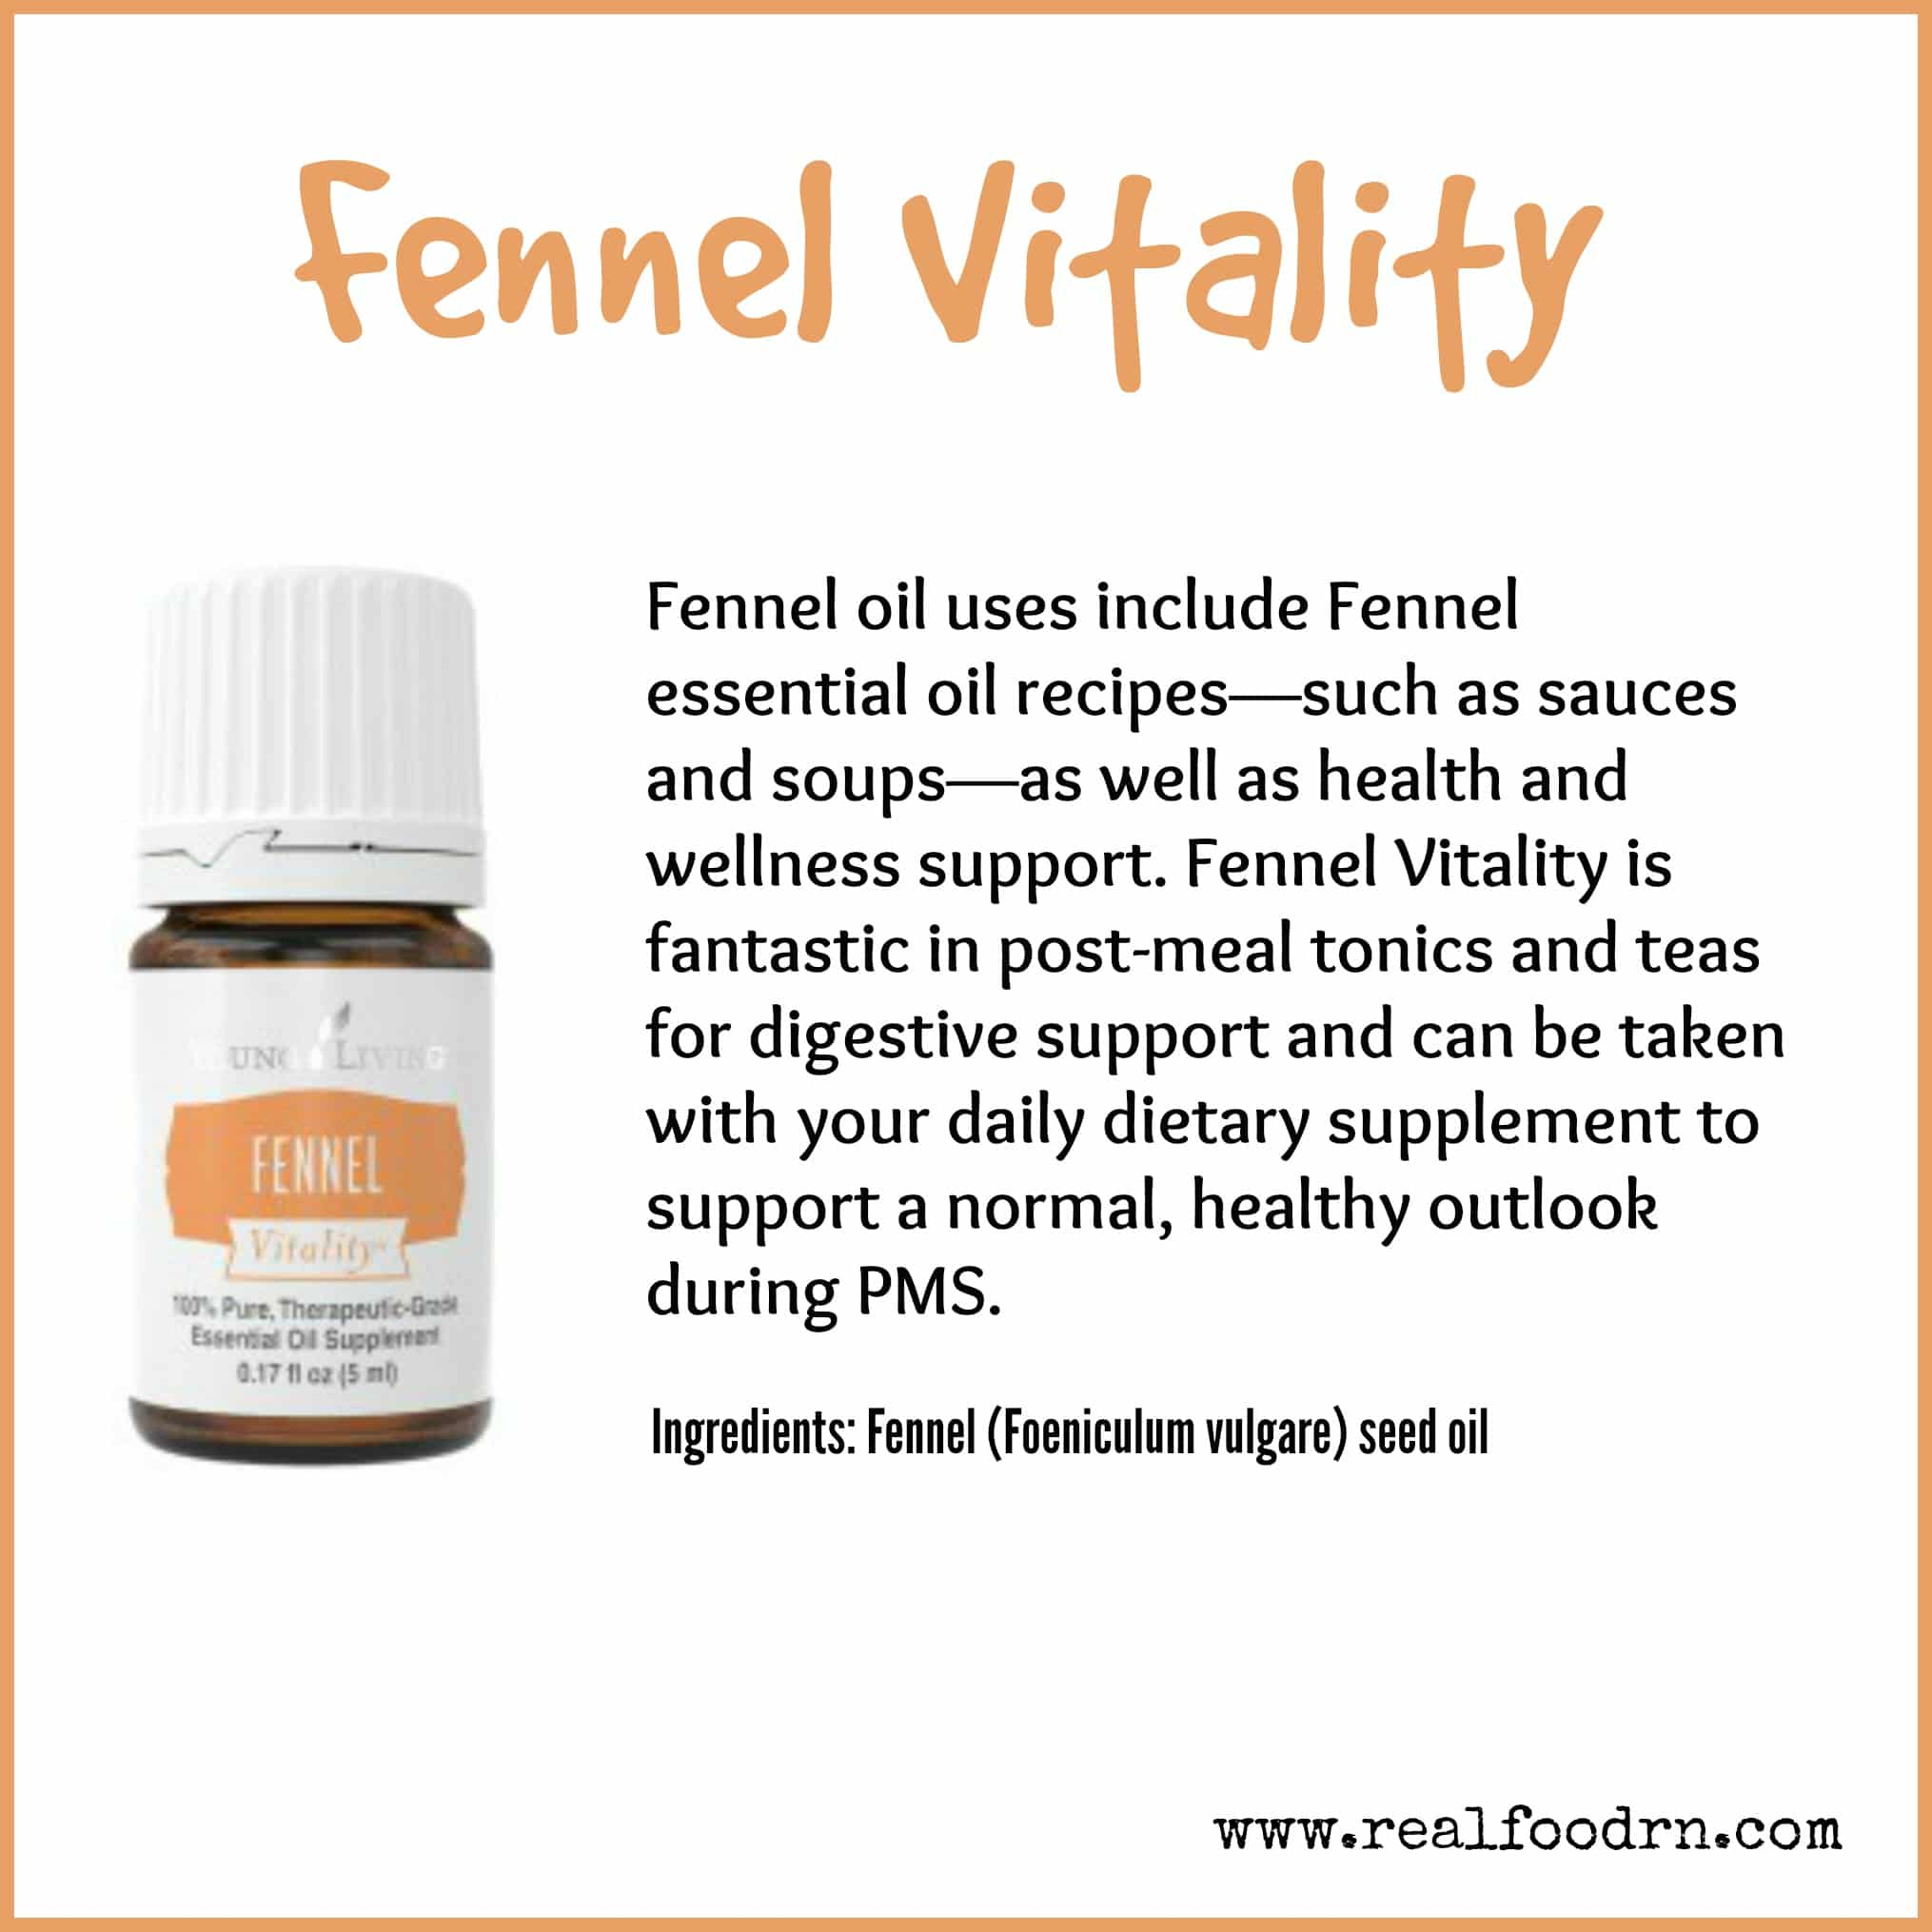 Fennel Vitality